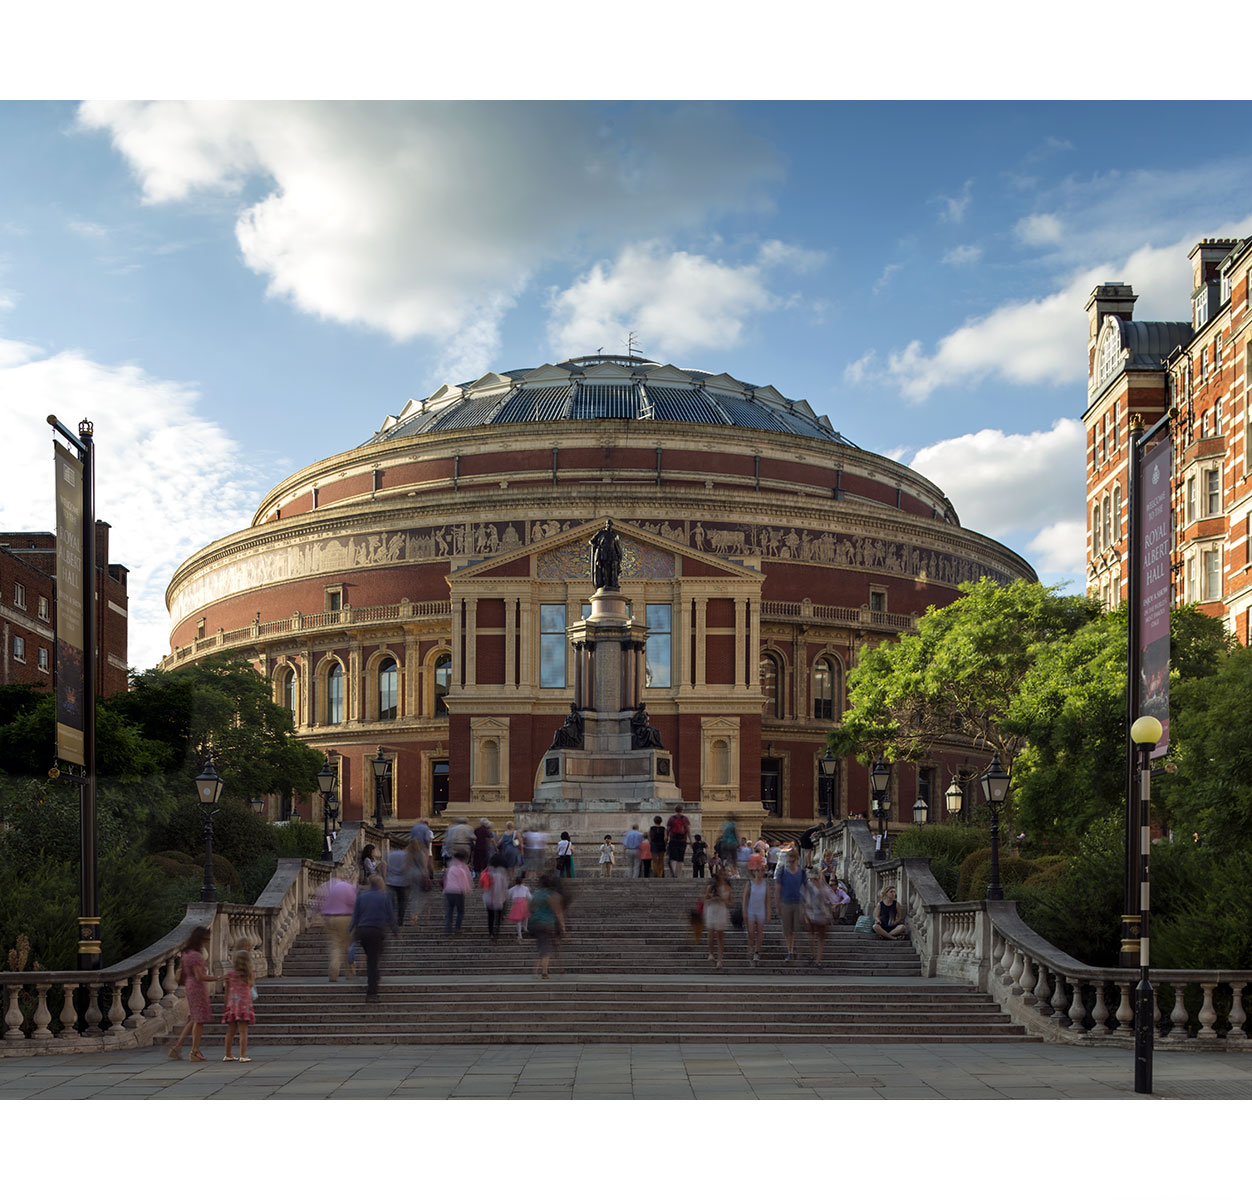 Paul Grundy. The Royal Albert Hall